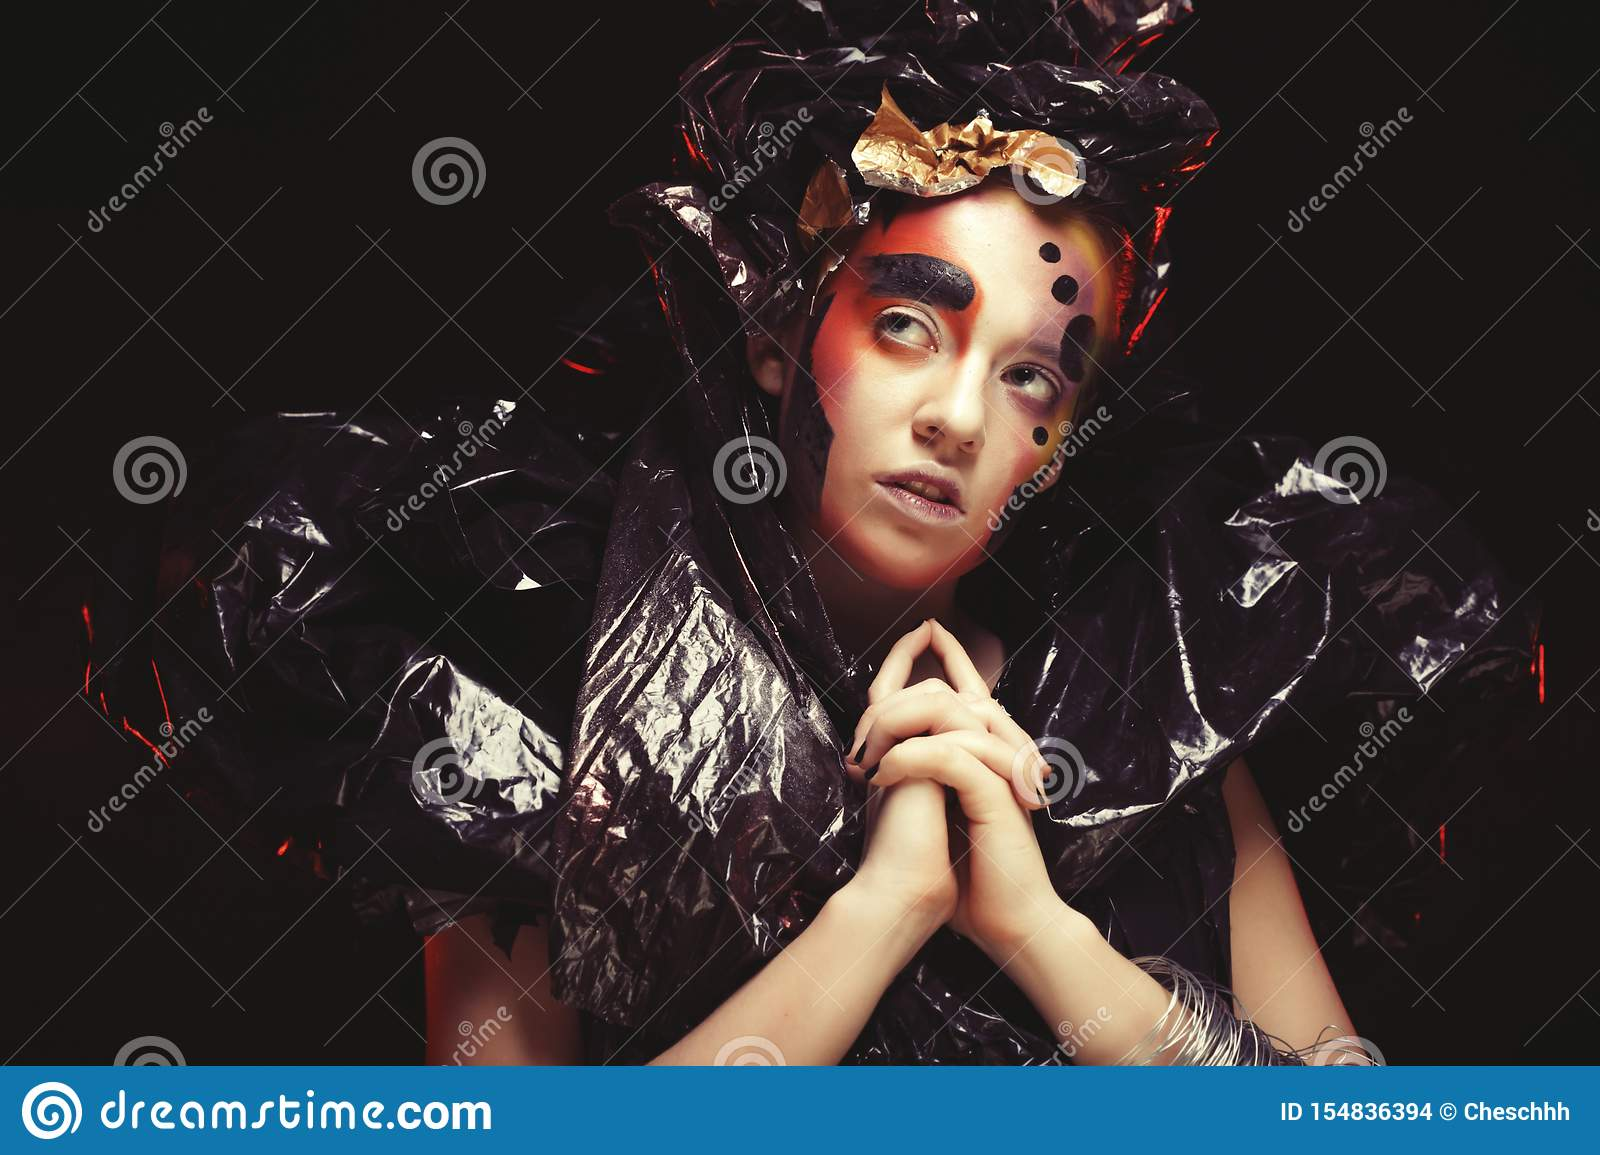 Beautiful young woman with bright fantasy make-up and costume posing on a black background in clouds of smoke. Halloween